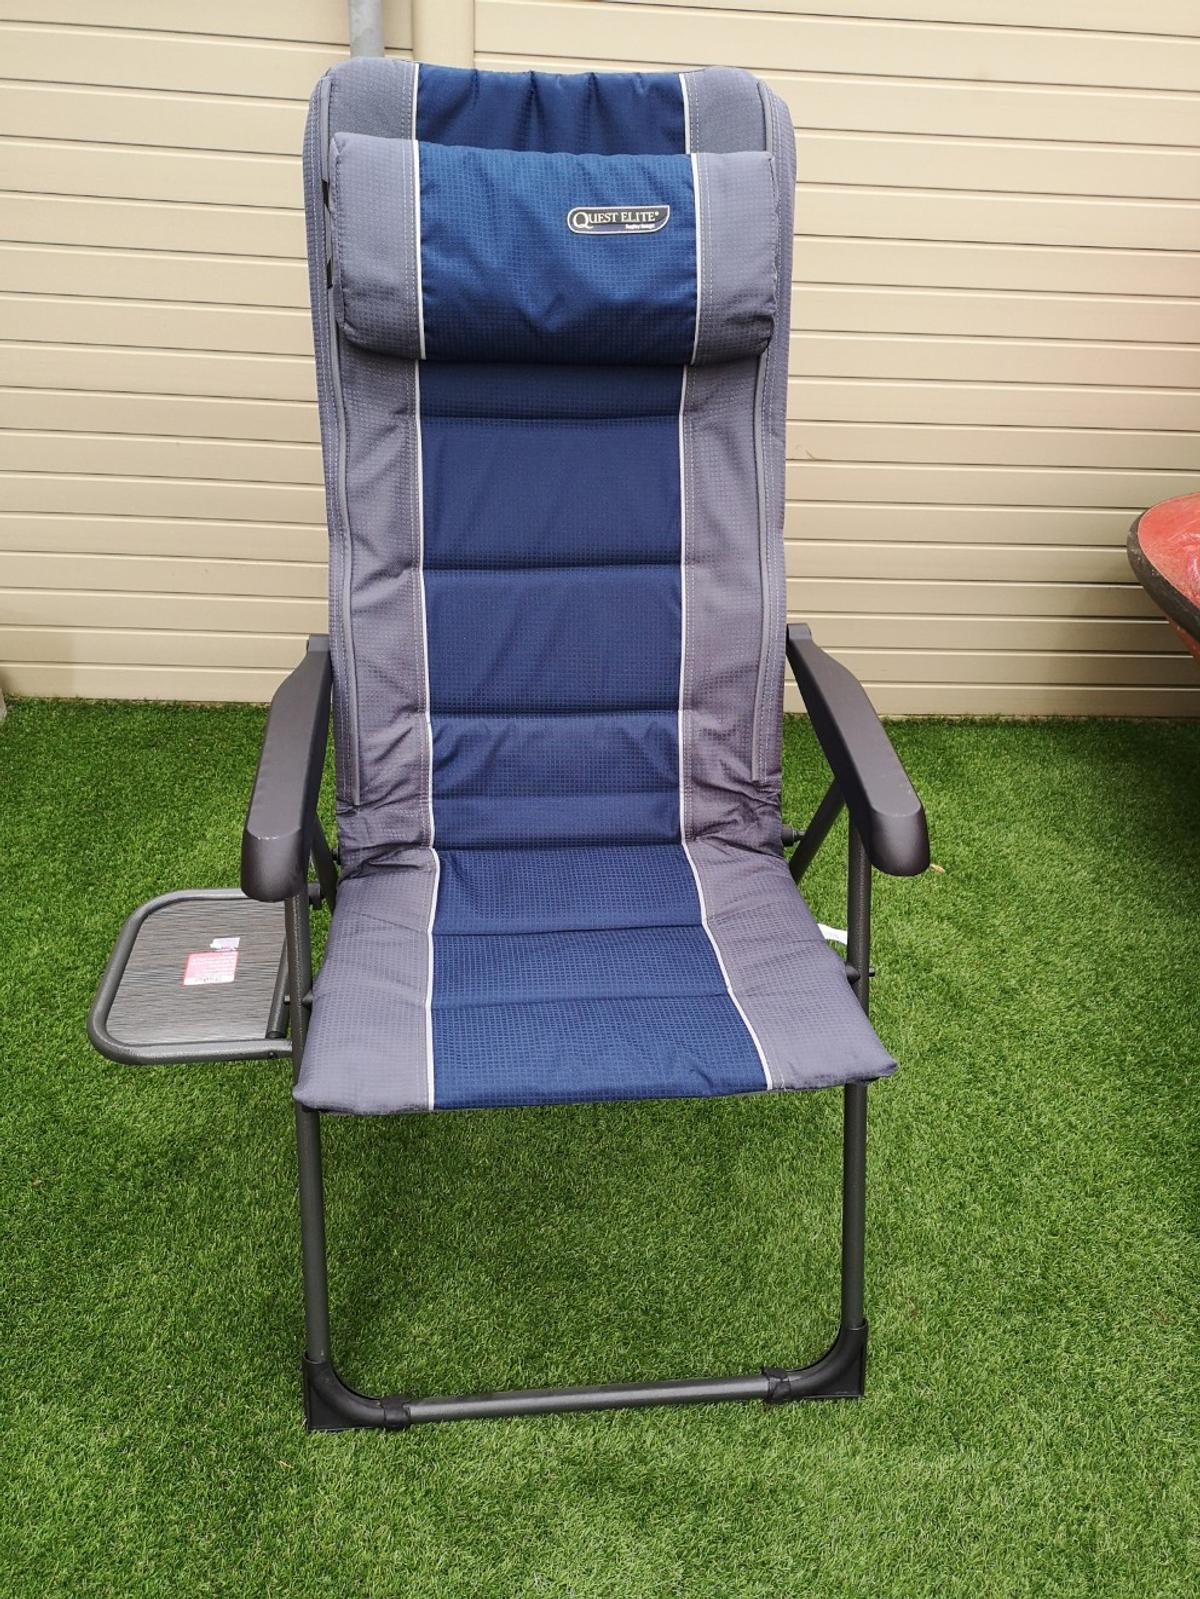 Fine Folding Camping Chair With Table Inzonedesignstudio Interior Chair Design Inzonedesignstudiocom